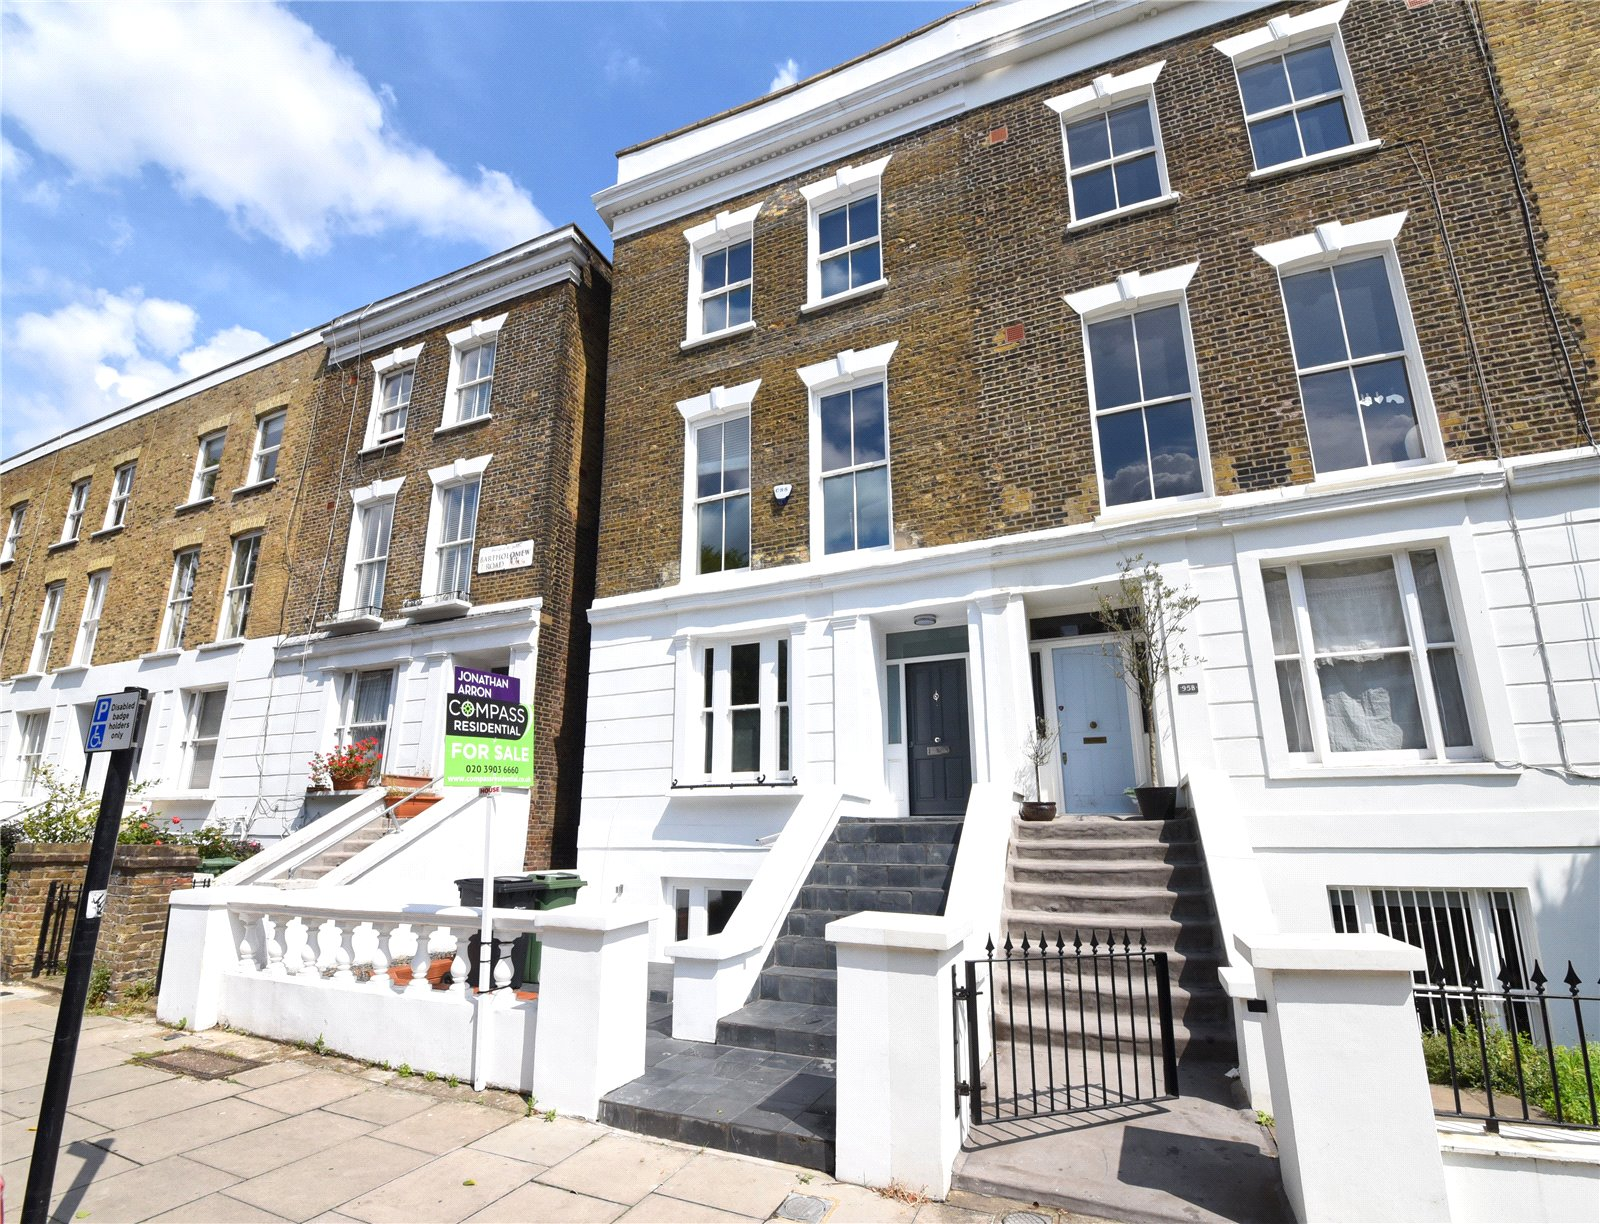 4 bed house for sale in Kentish Town, NW5 2AR, NW5